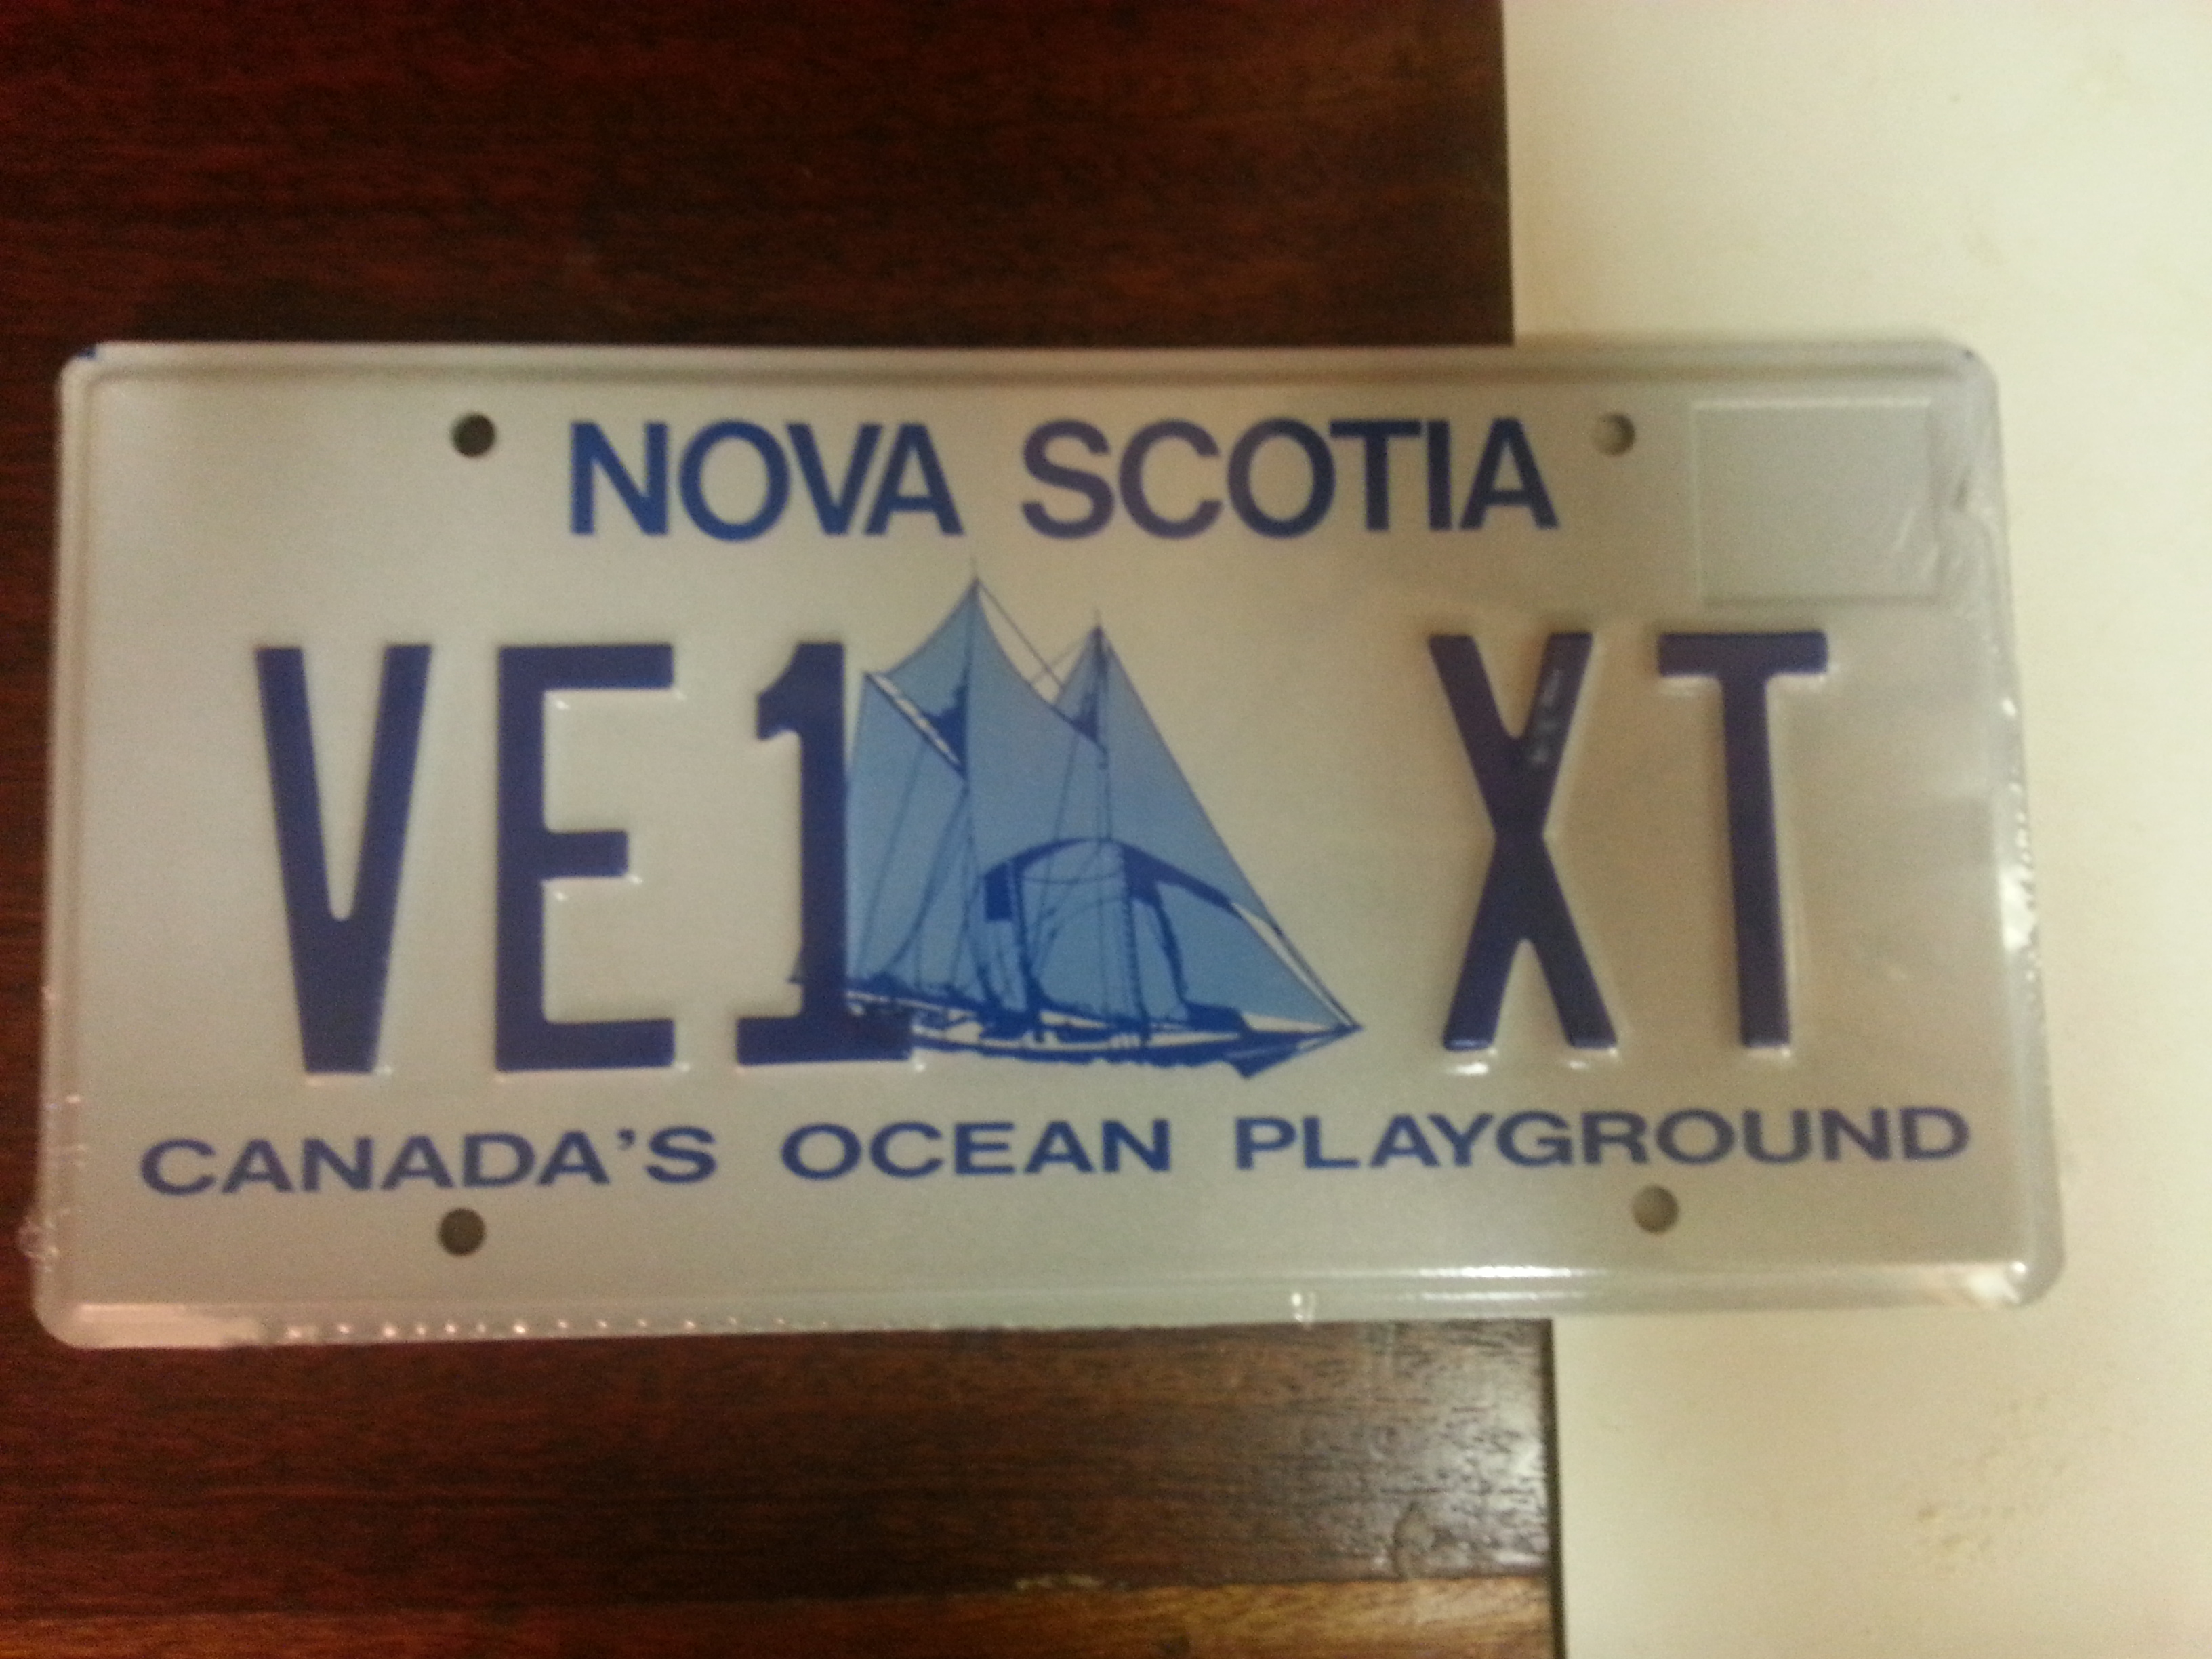 Ve1dcd ve1xt page 2 a technology and amateur radio enthusiast call sign license plates xflitez Image collections